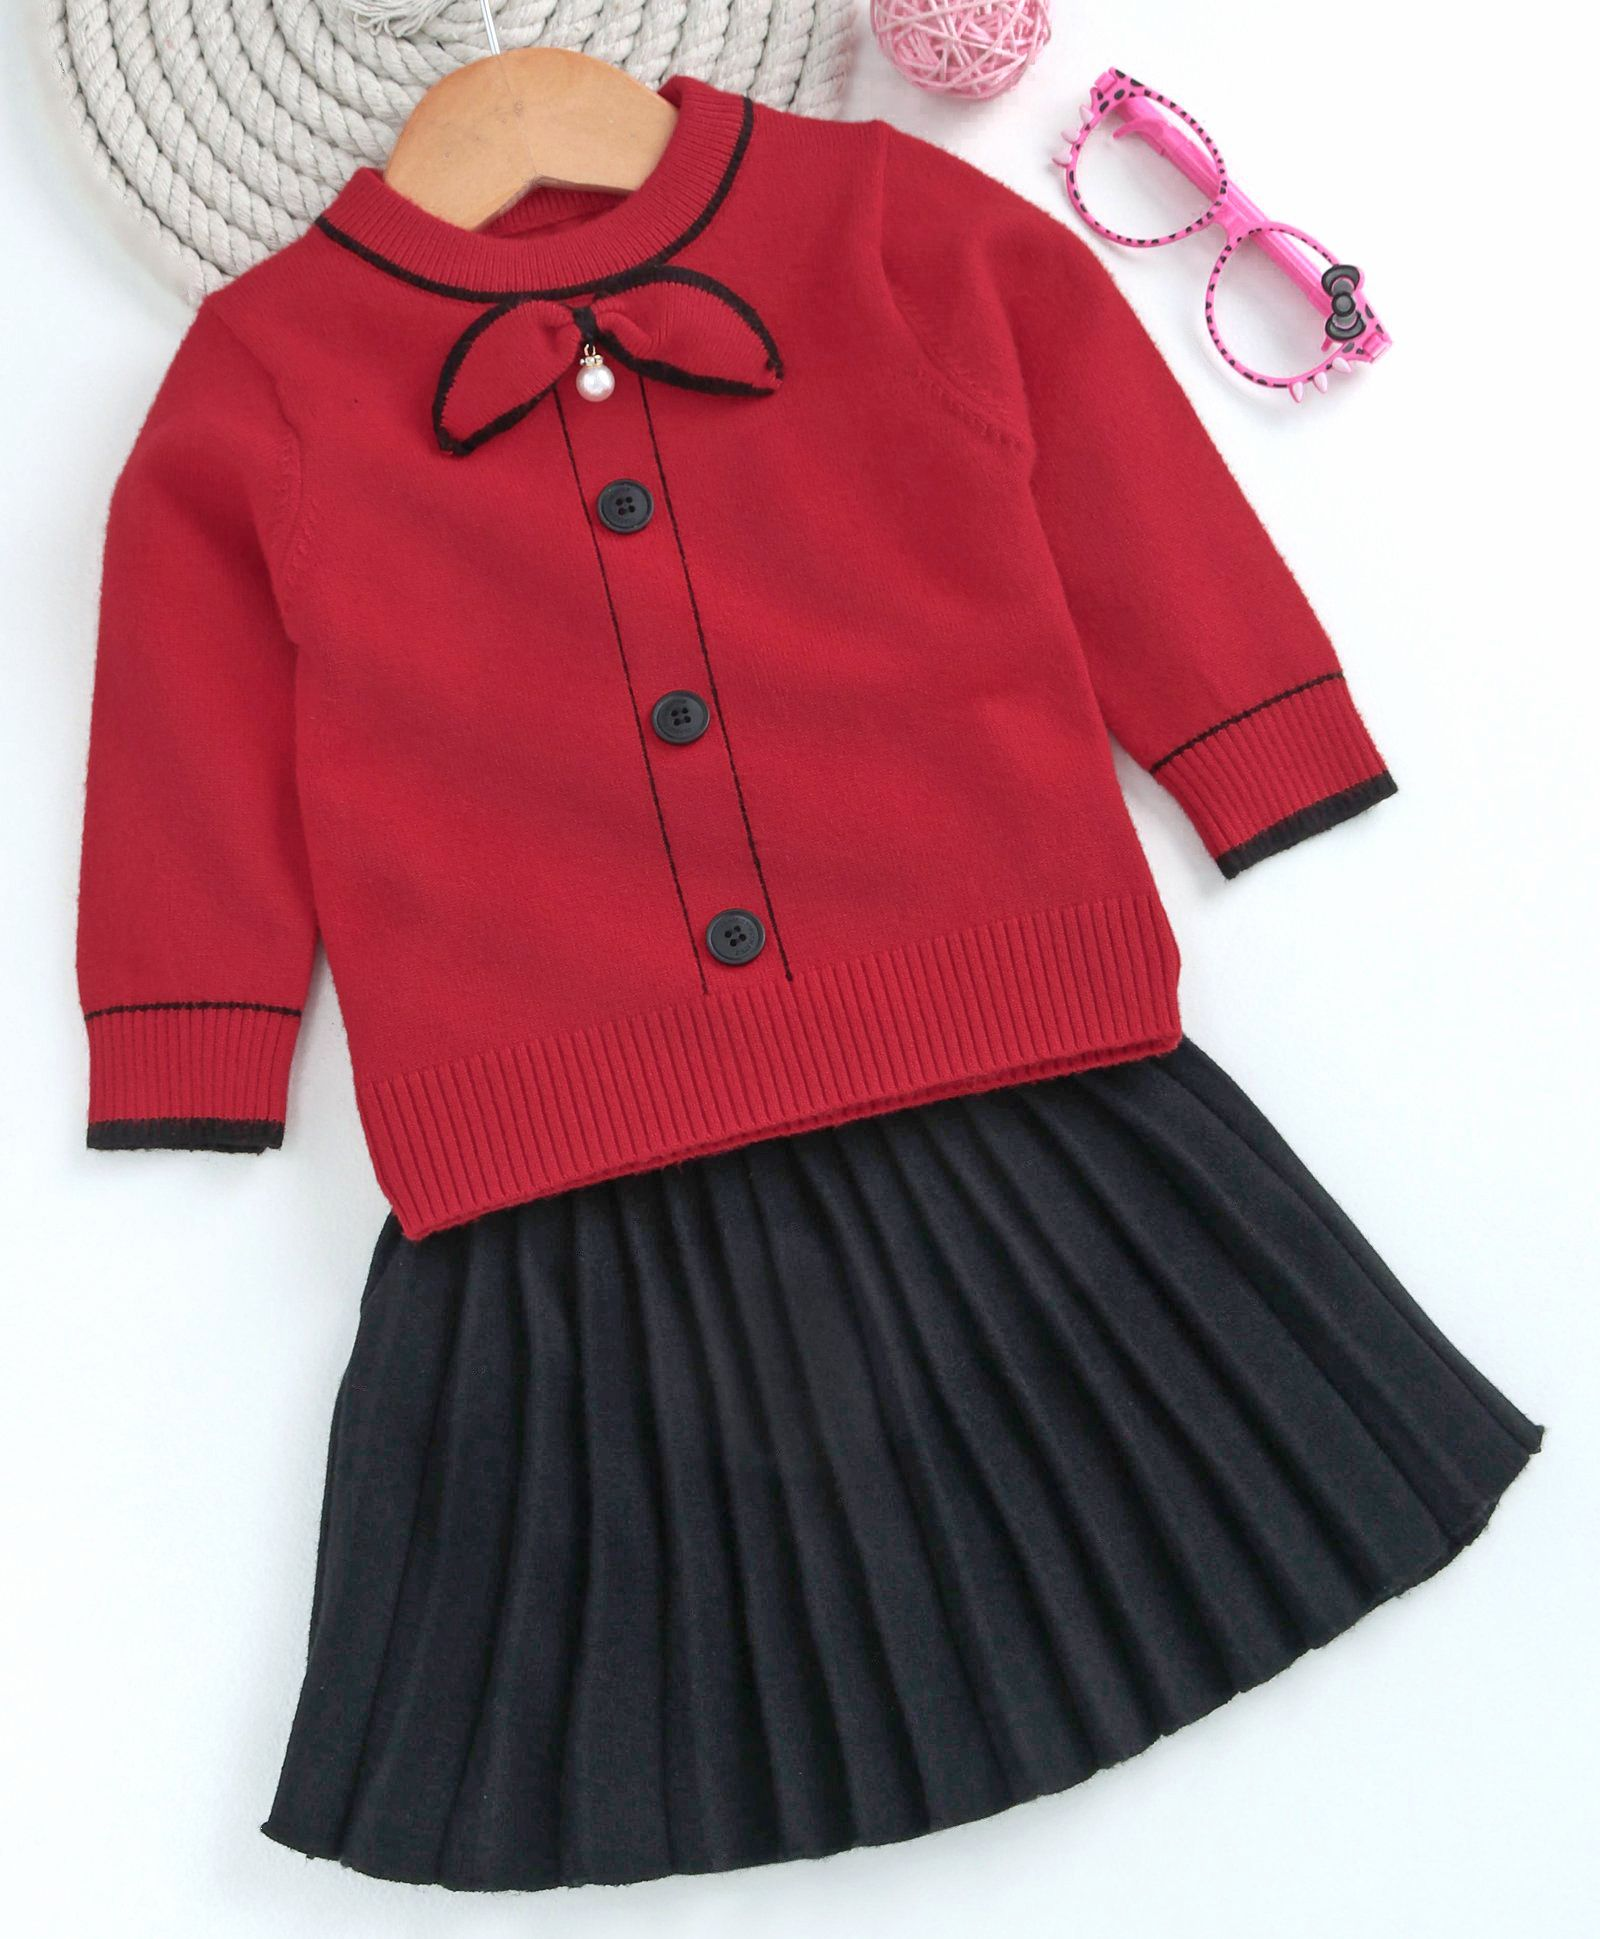 fa574857d47e Buy Kookie Kids Full Sleeves Top With Pleated Skirt Red & Black for ...